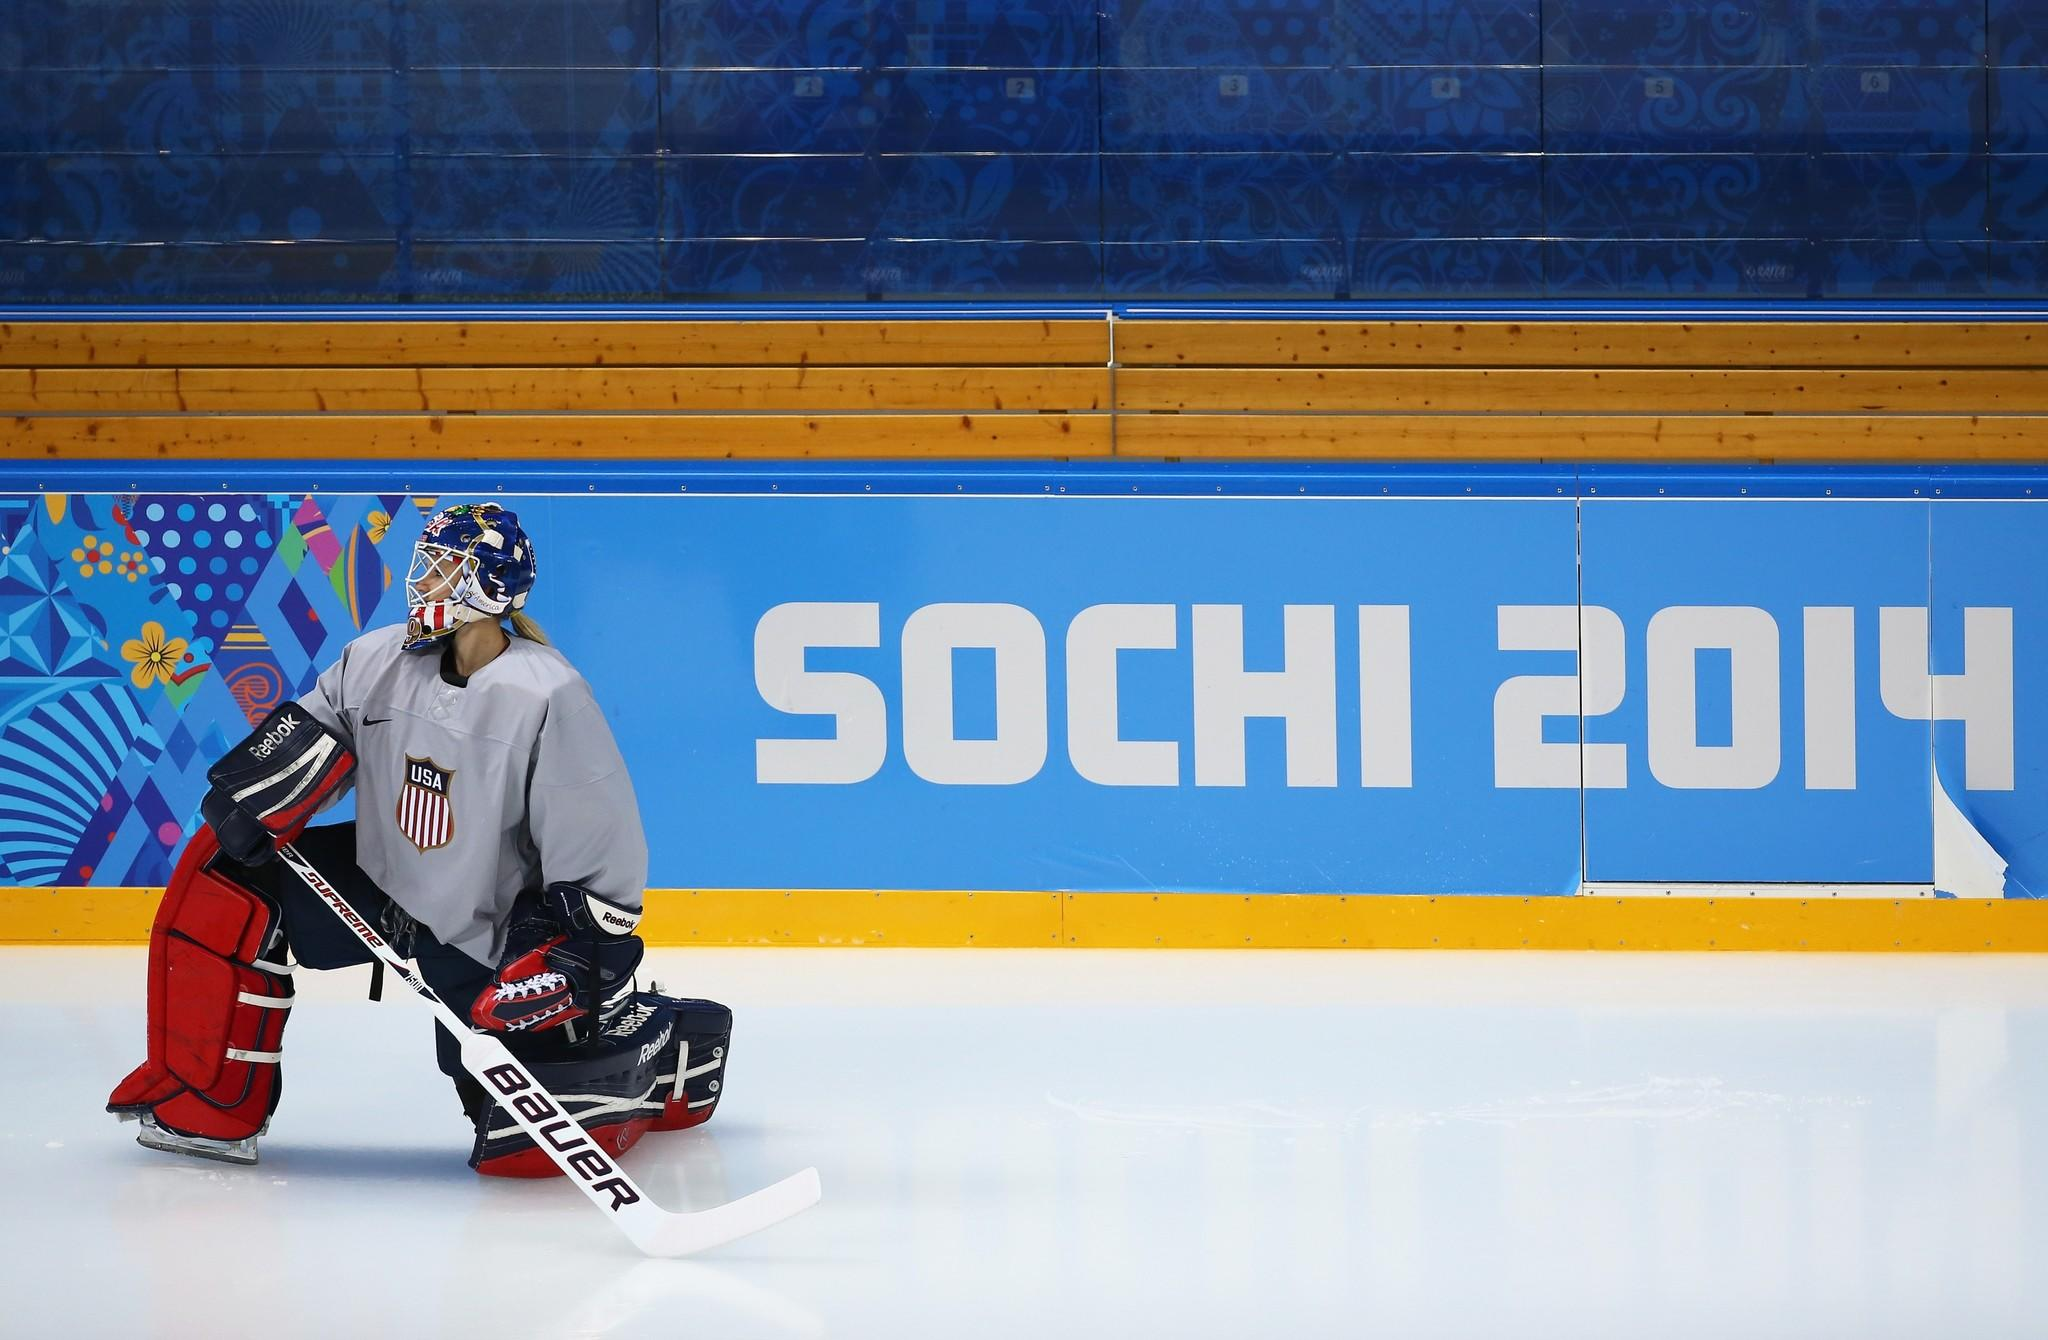 Goaltender Jessie Vetter of United states warms up during a training session ahead of the Sochi 2014 Winter Olympics at Shayba Arena.